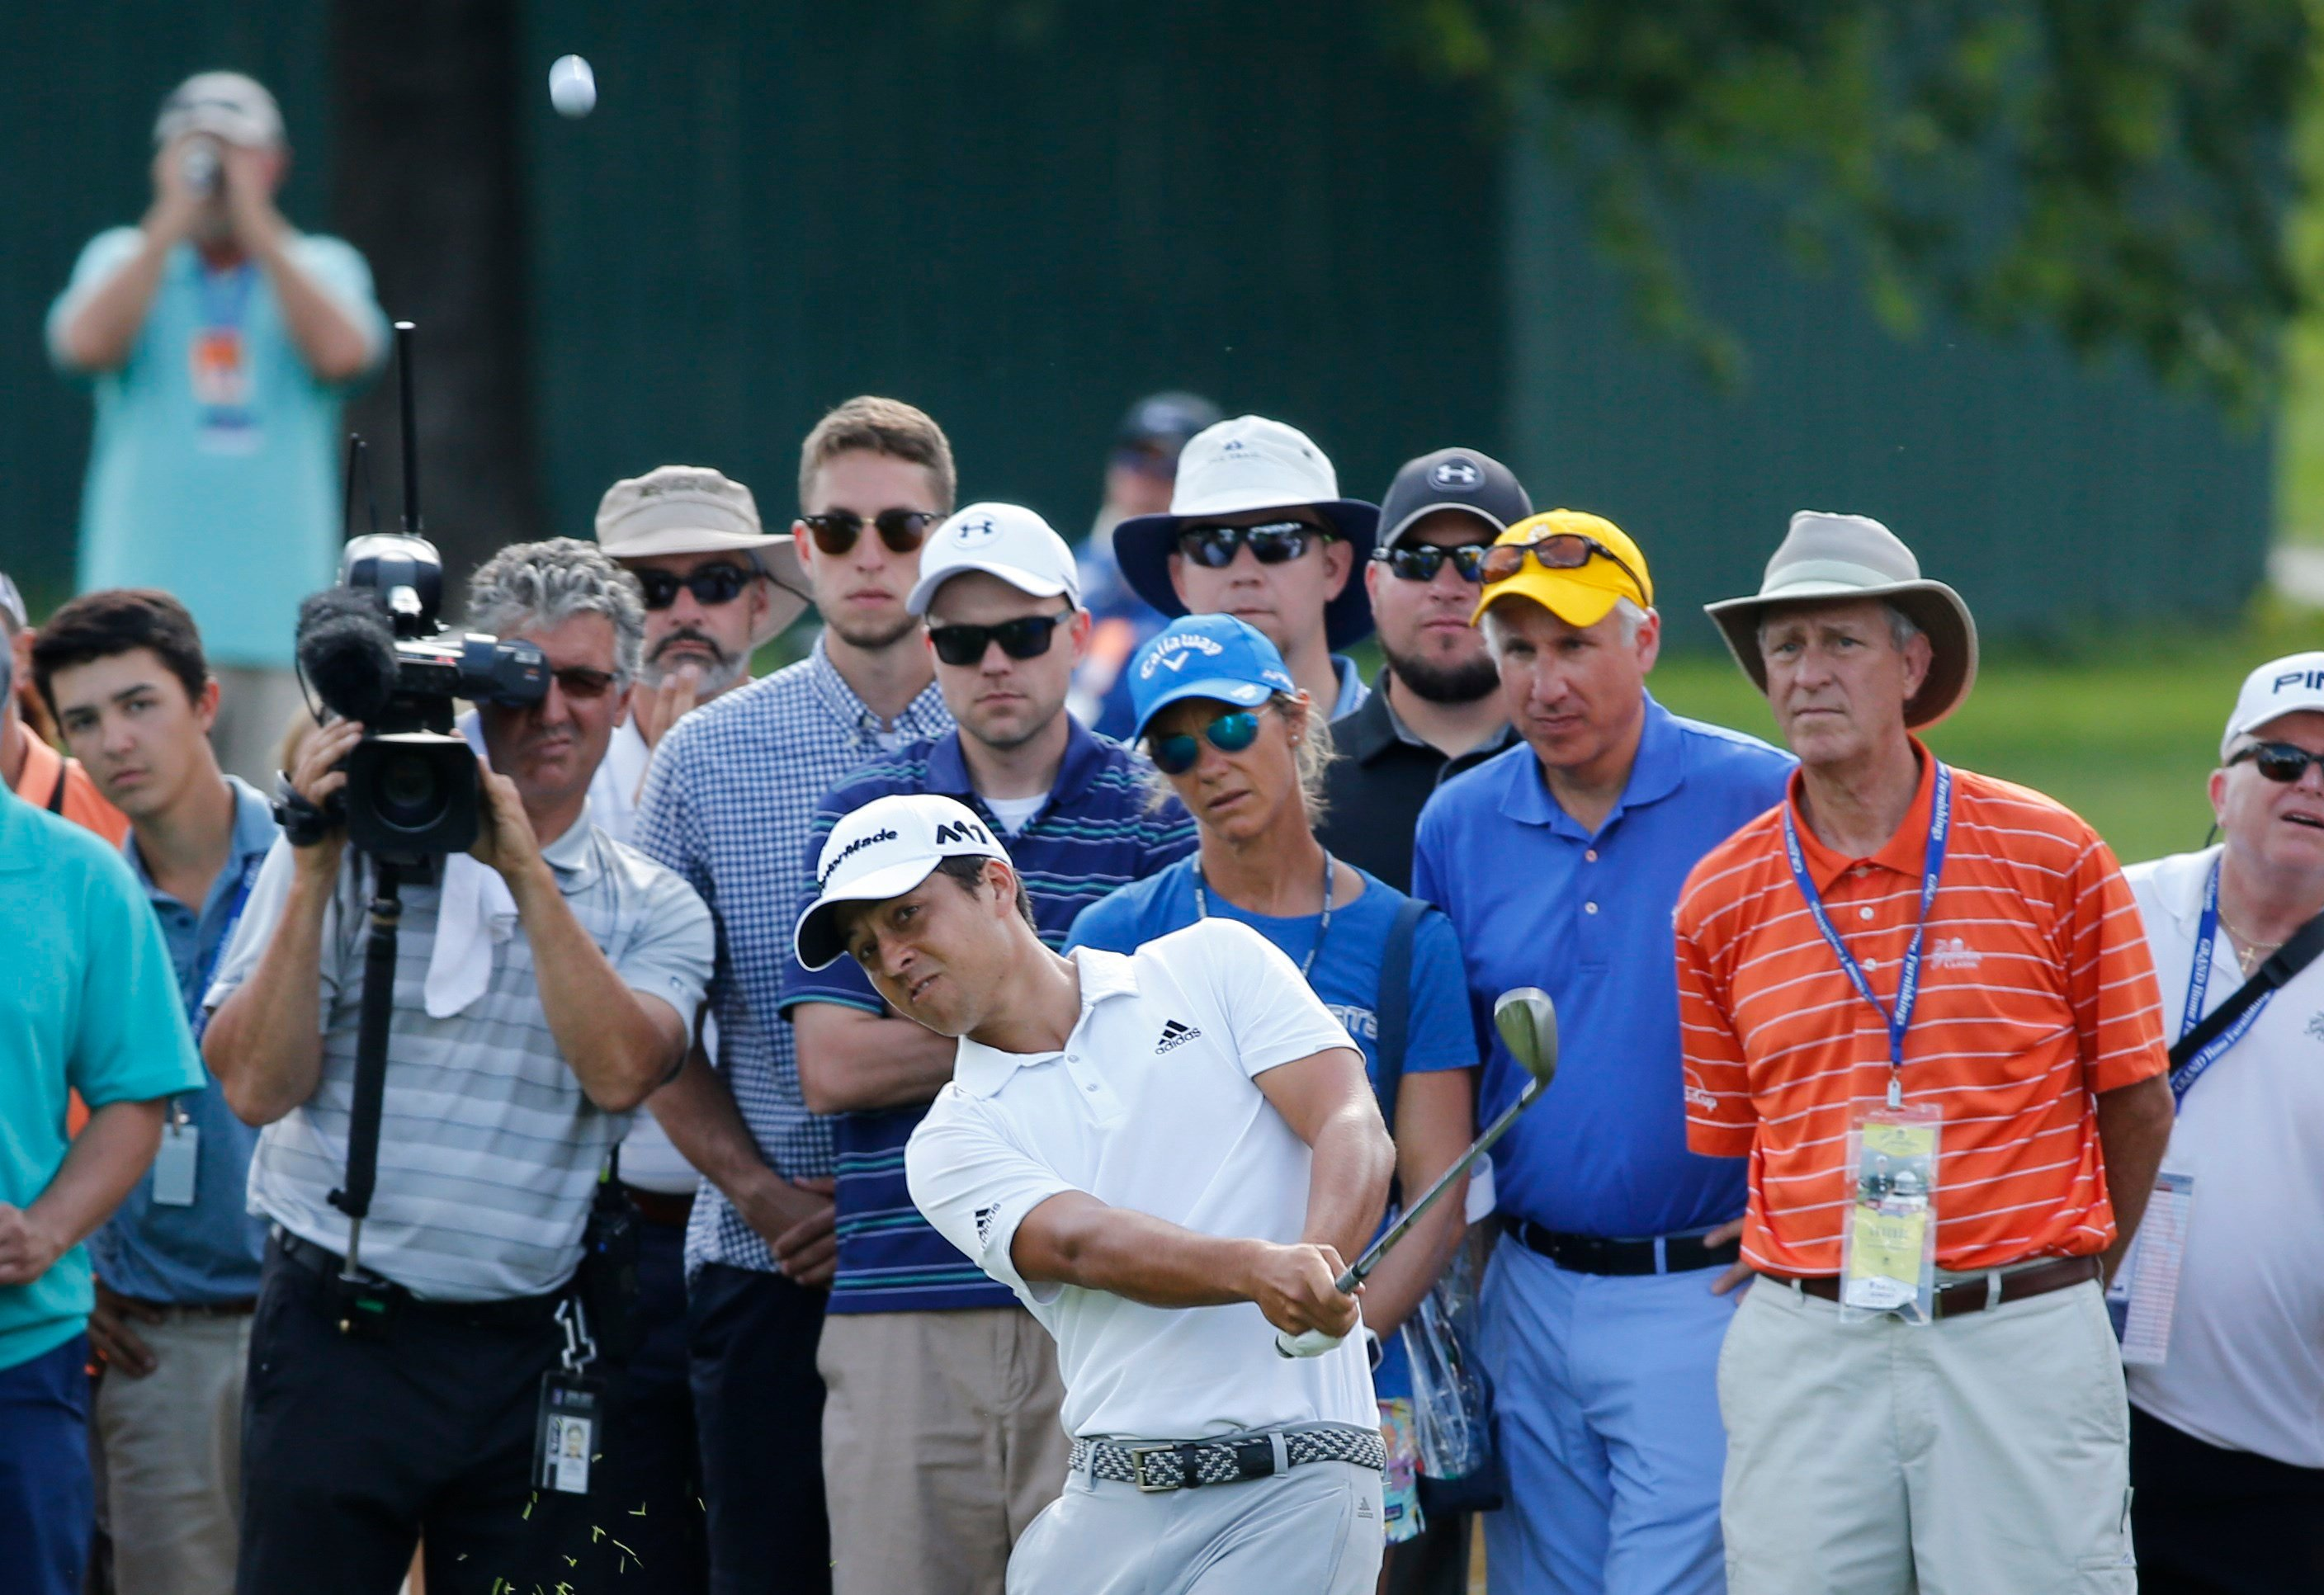 Xander Schauffele, center, hits up to the 17th green during the Greenbrier Classic PGA Tour golf tournament Sunday, July 9, 2017, in White Sulphur Springs, W.Va. (AP Photo/Steve Helber)